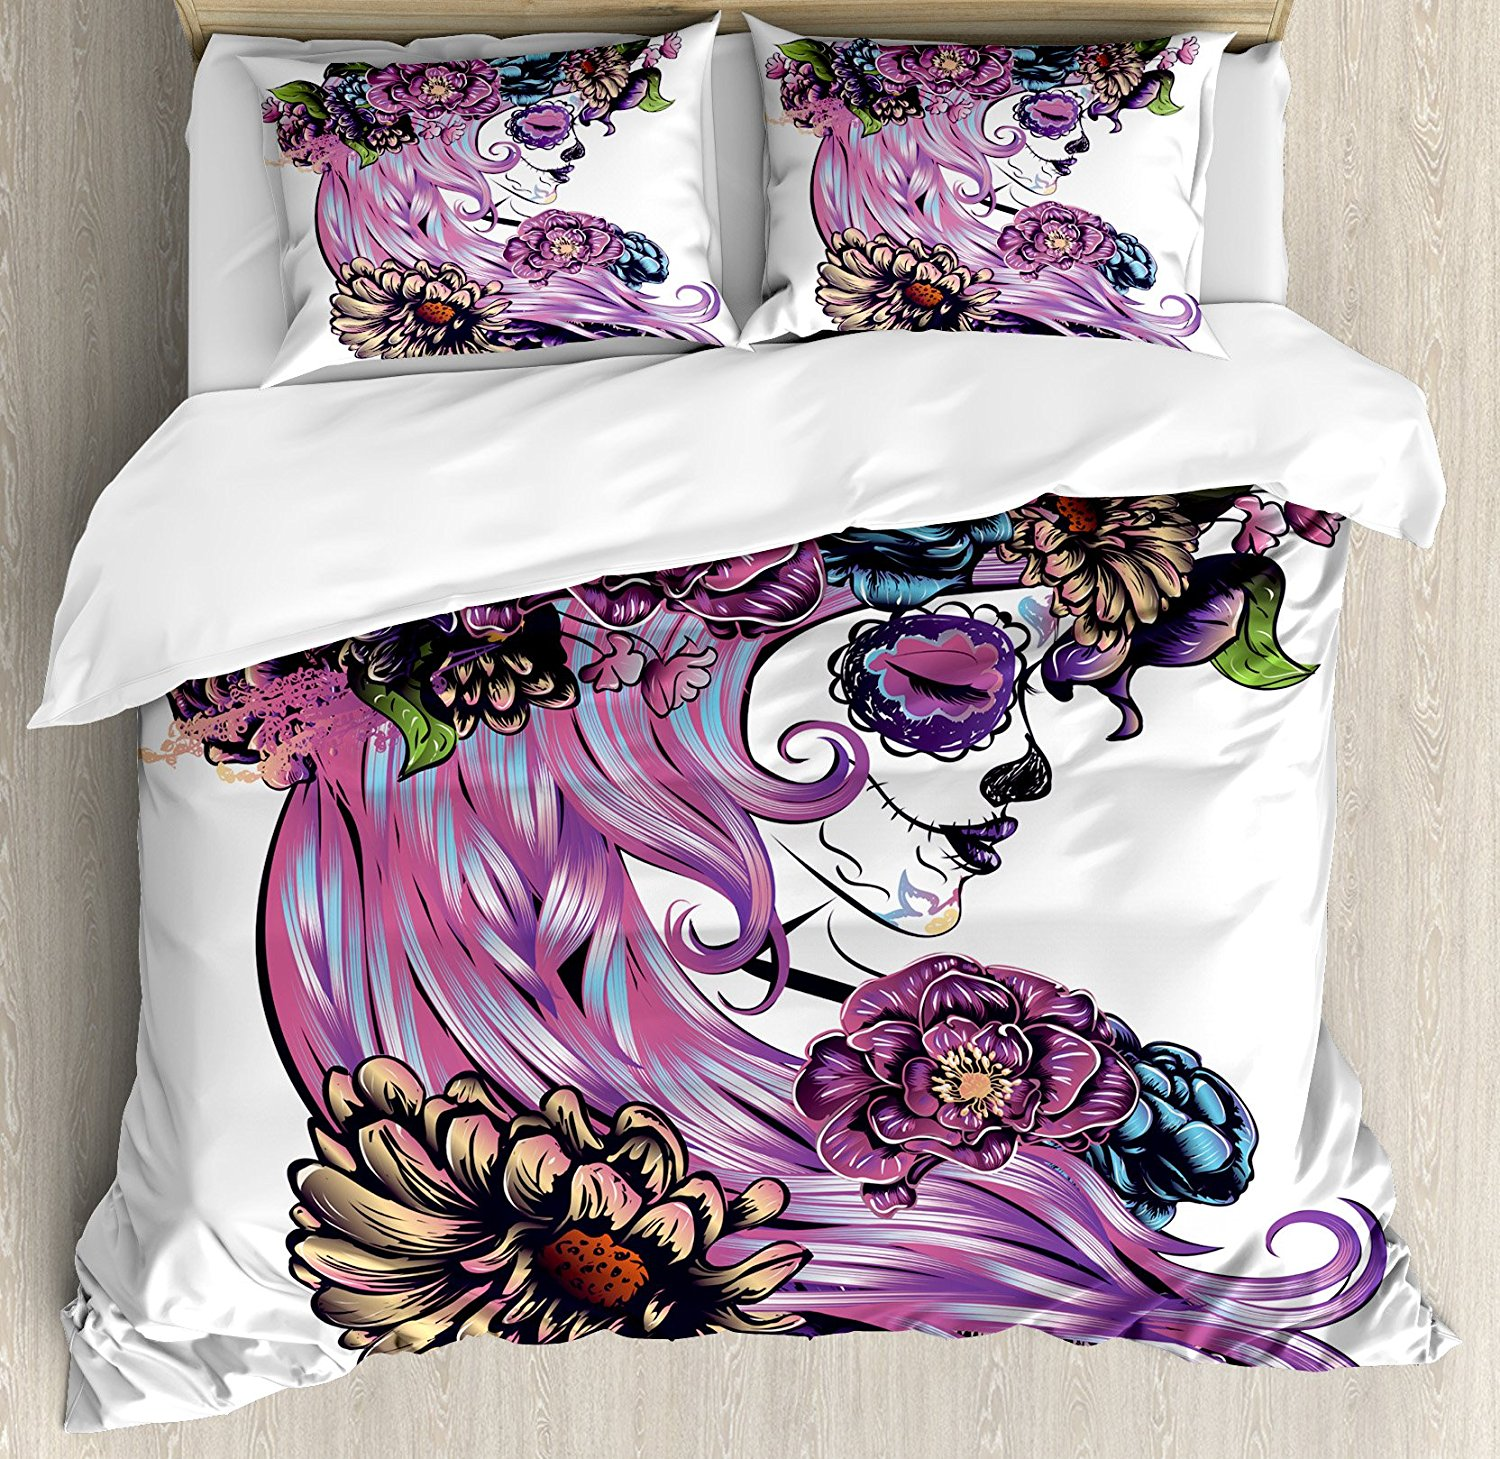 Image of: Day of the Dead Bed Set Ideas